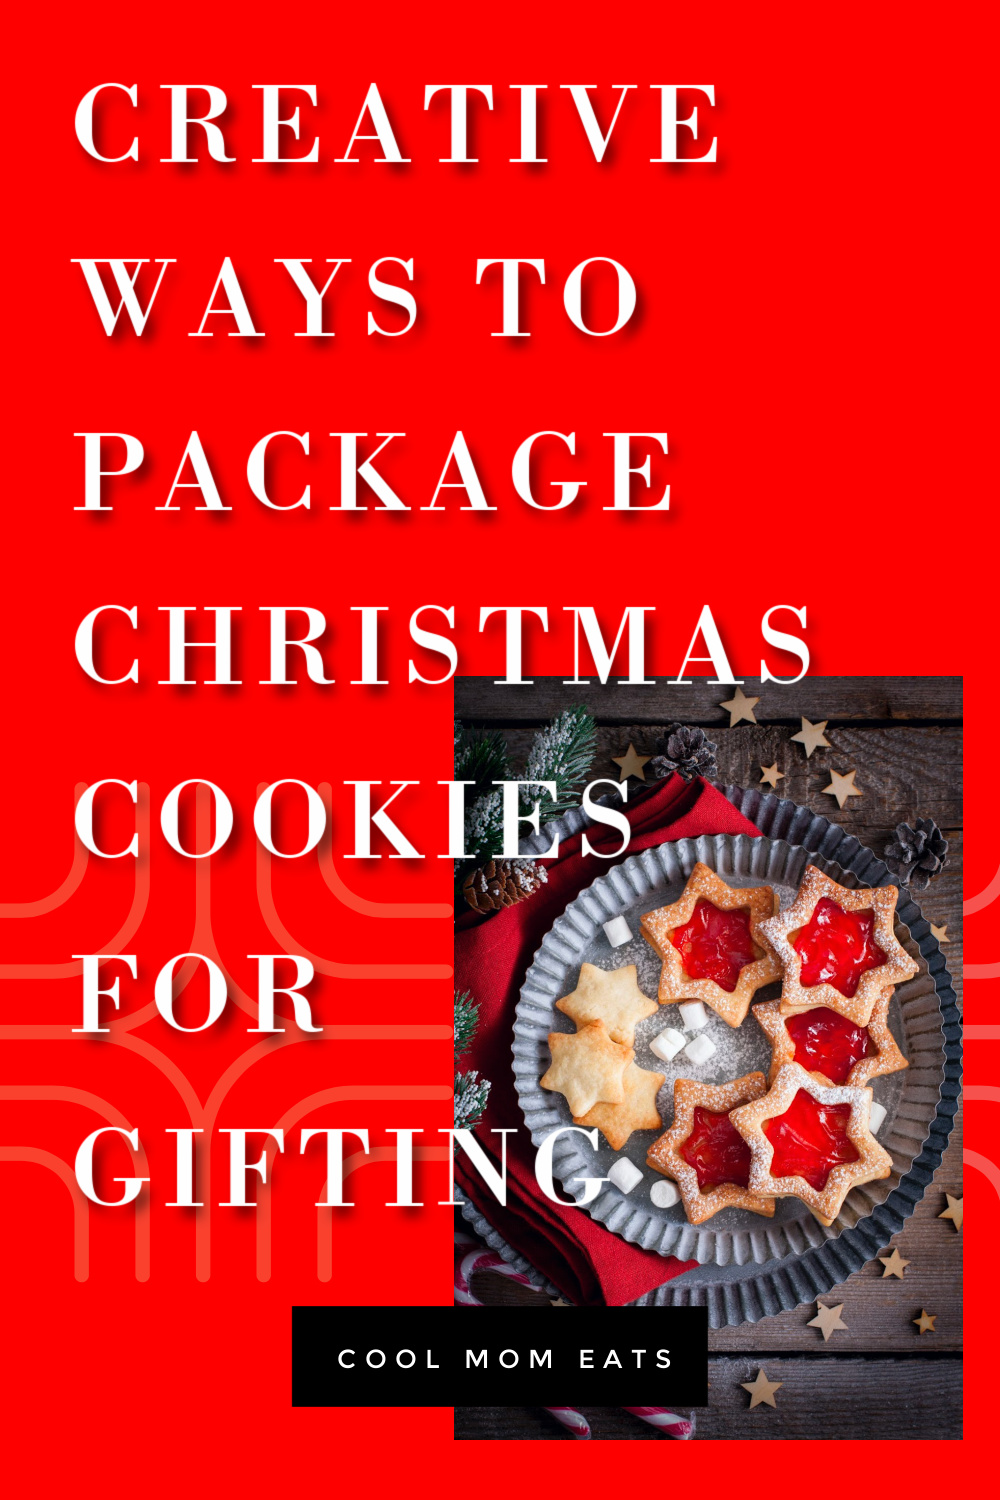 Creative ways to package Christmas cookies for gifting | Cool Mom Eats